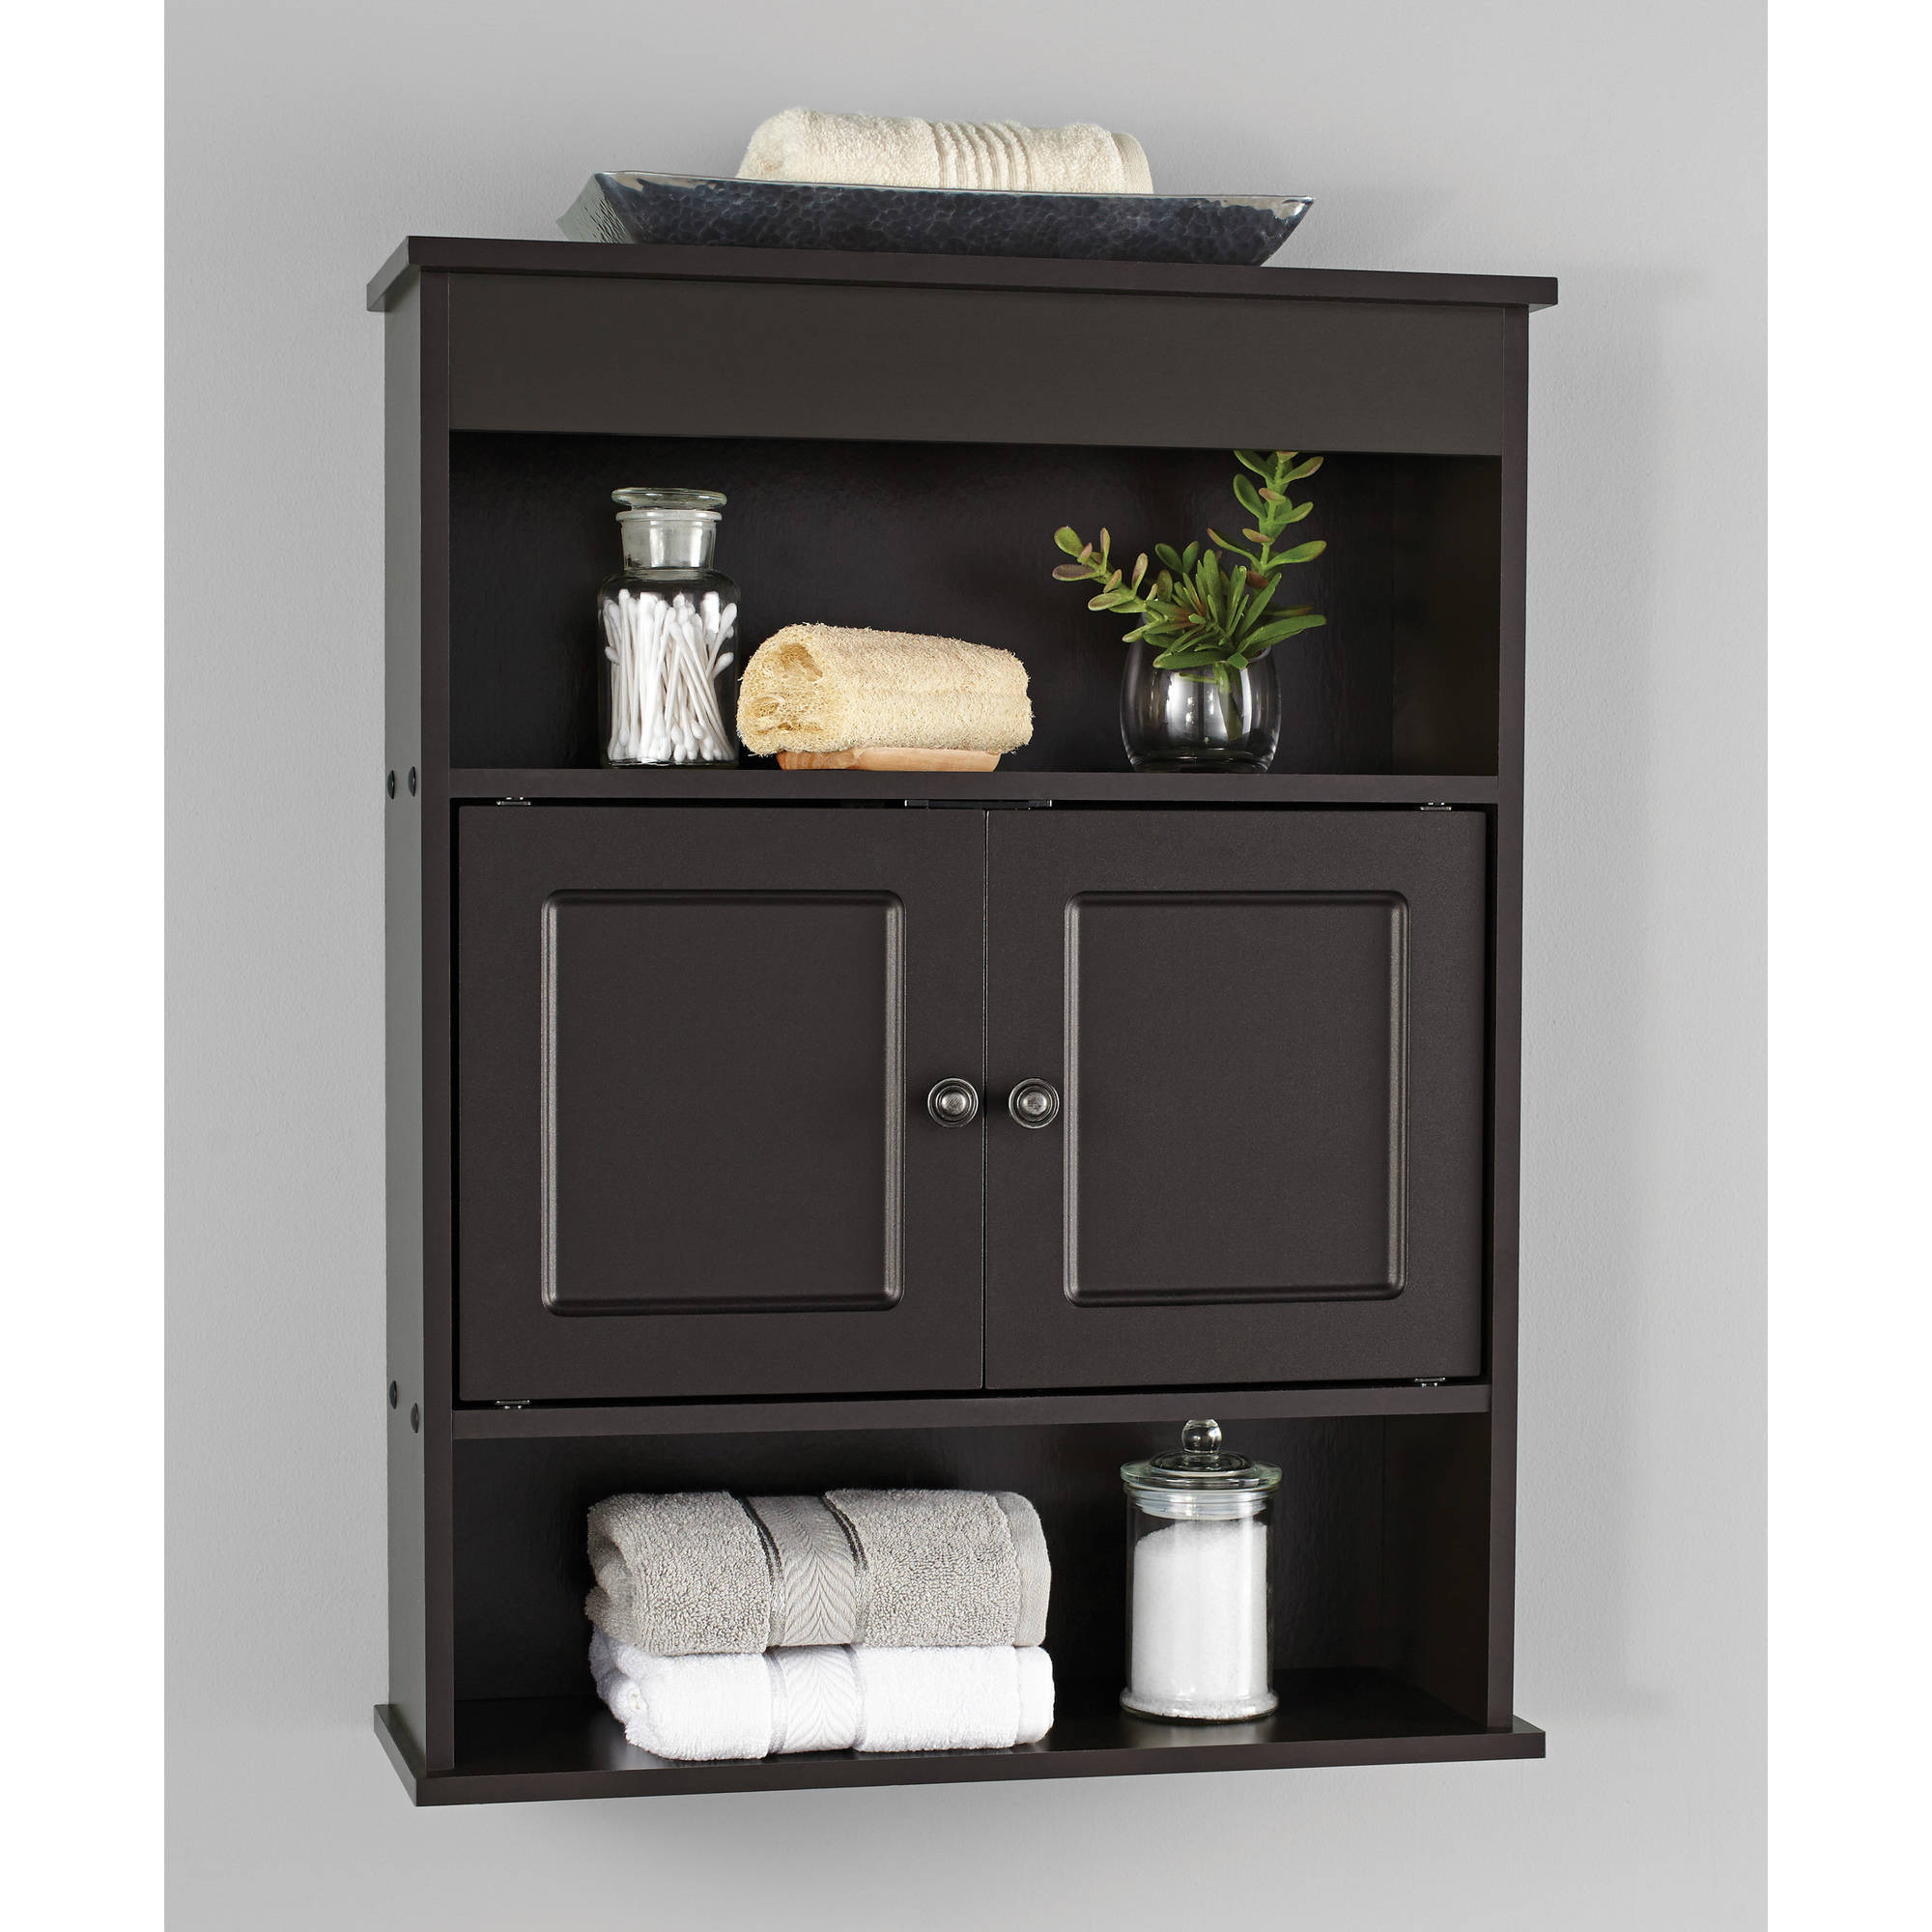 Chapter Bathroom Wall Medicine Cabinet Storage Shelf Espresso Vanity ...